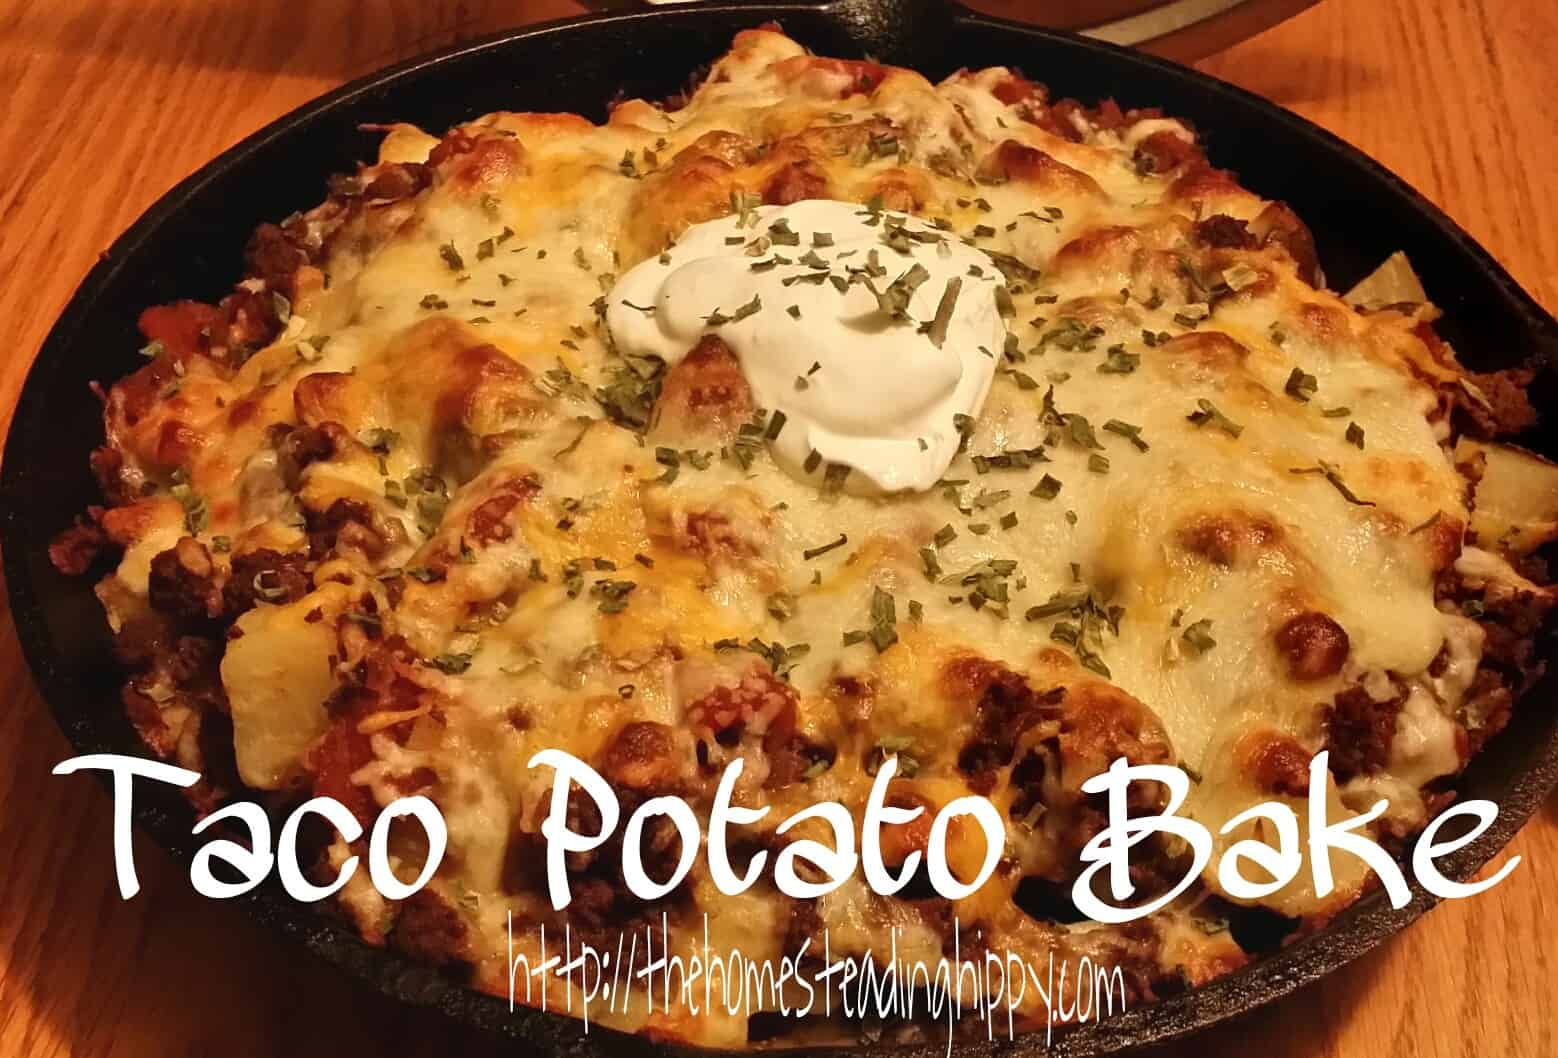 Warm up inside when it's cold outside with this delicous Taco Potato Bake~The Homesteading Hippy #homesteadinghippy #fromthefarm #recipes